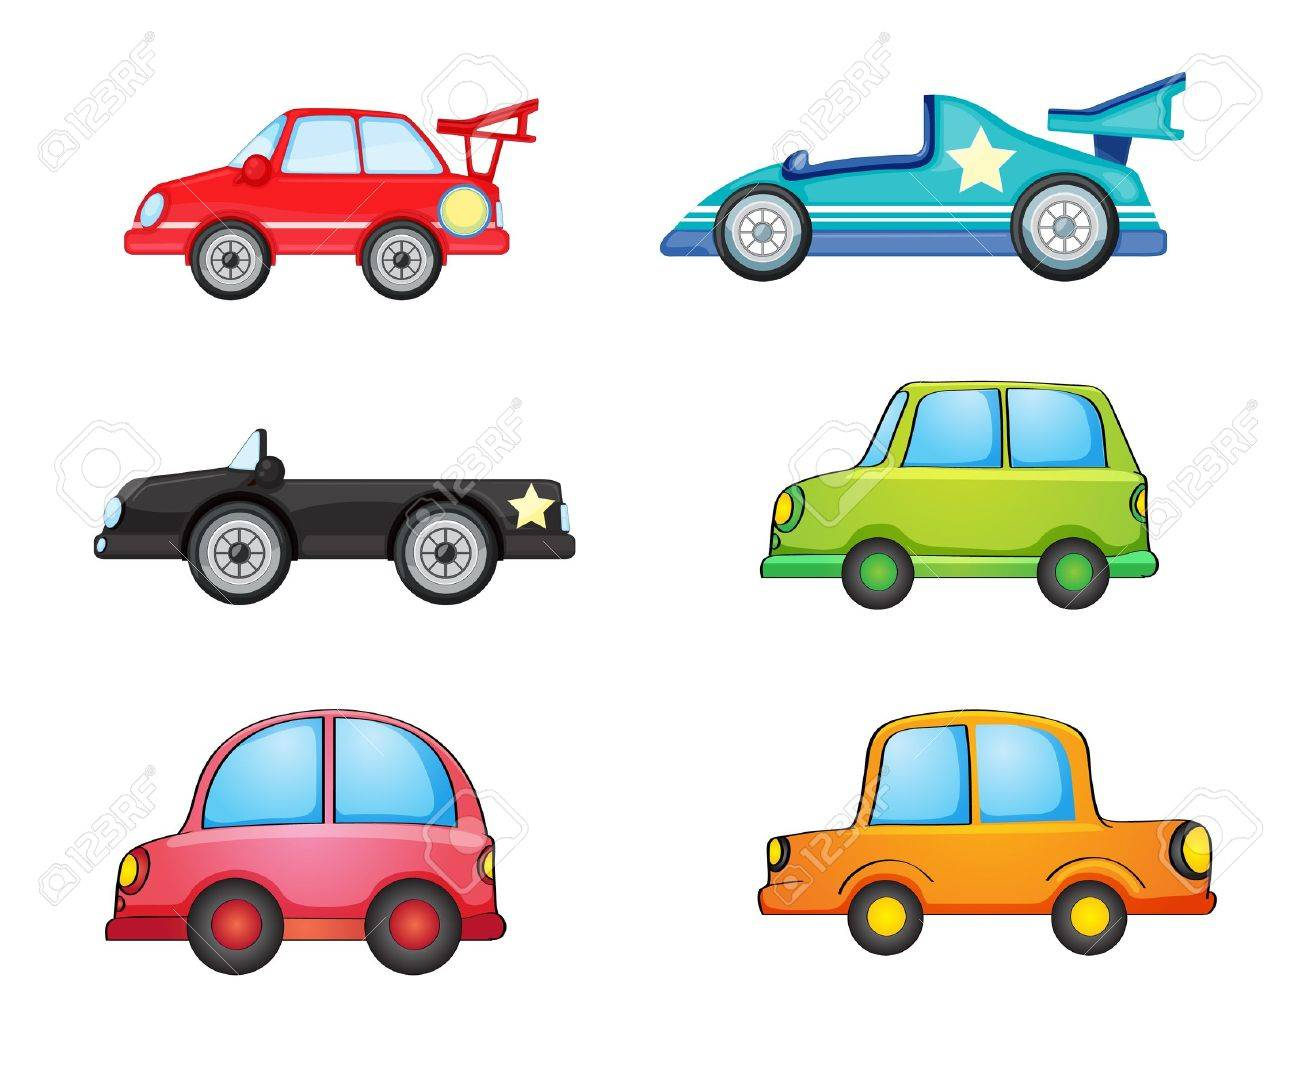 illustration of various cars on a white background Stock Vector - 15730692